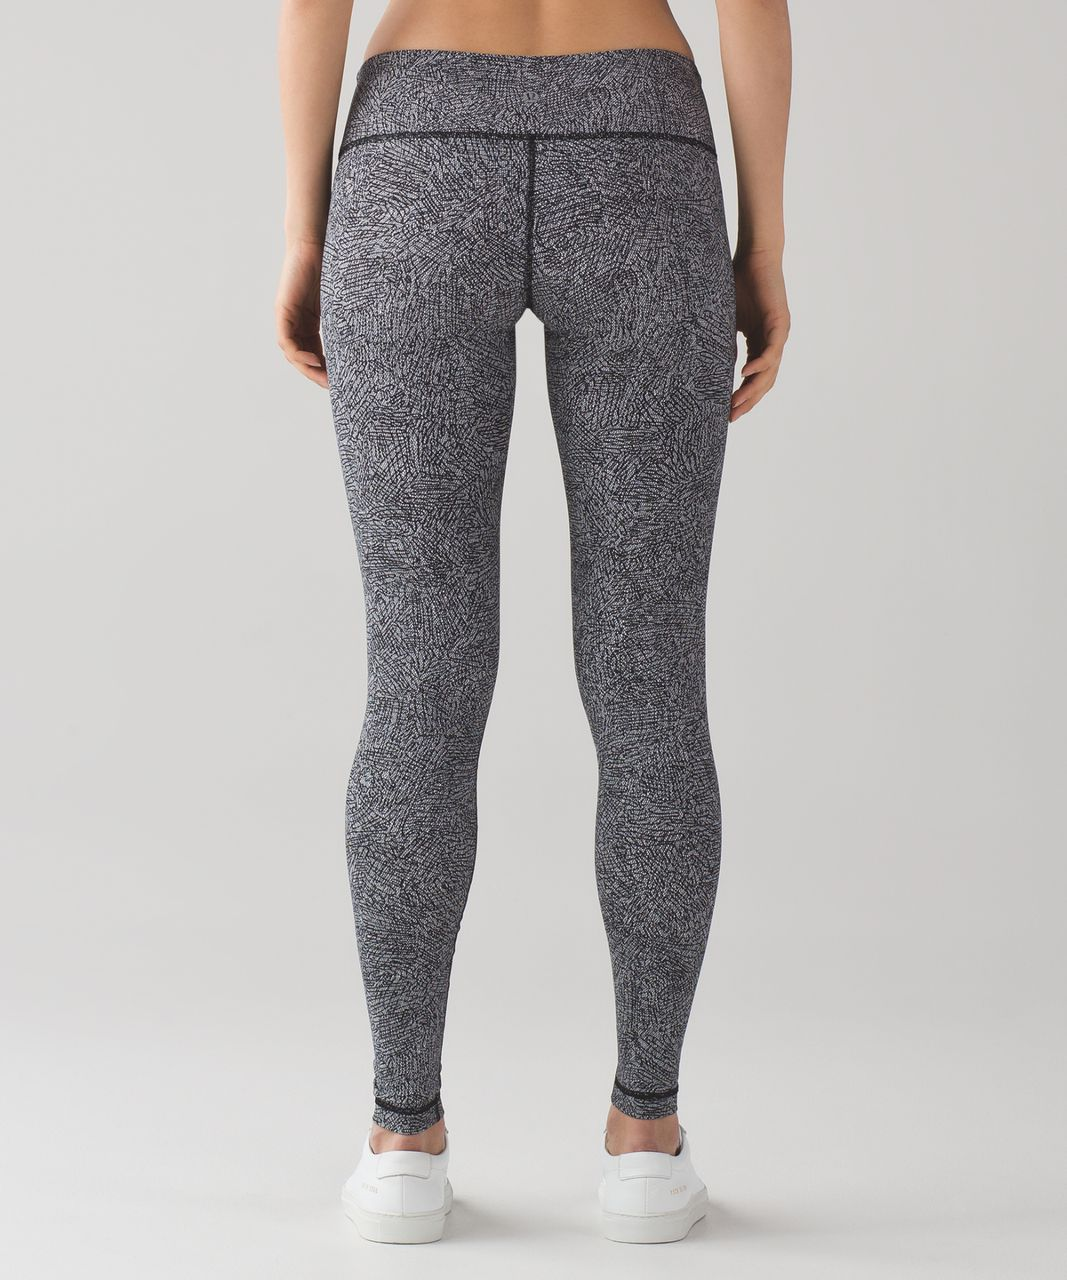 Lululemon Wunder Under Pant III - Line Up White Black